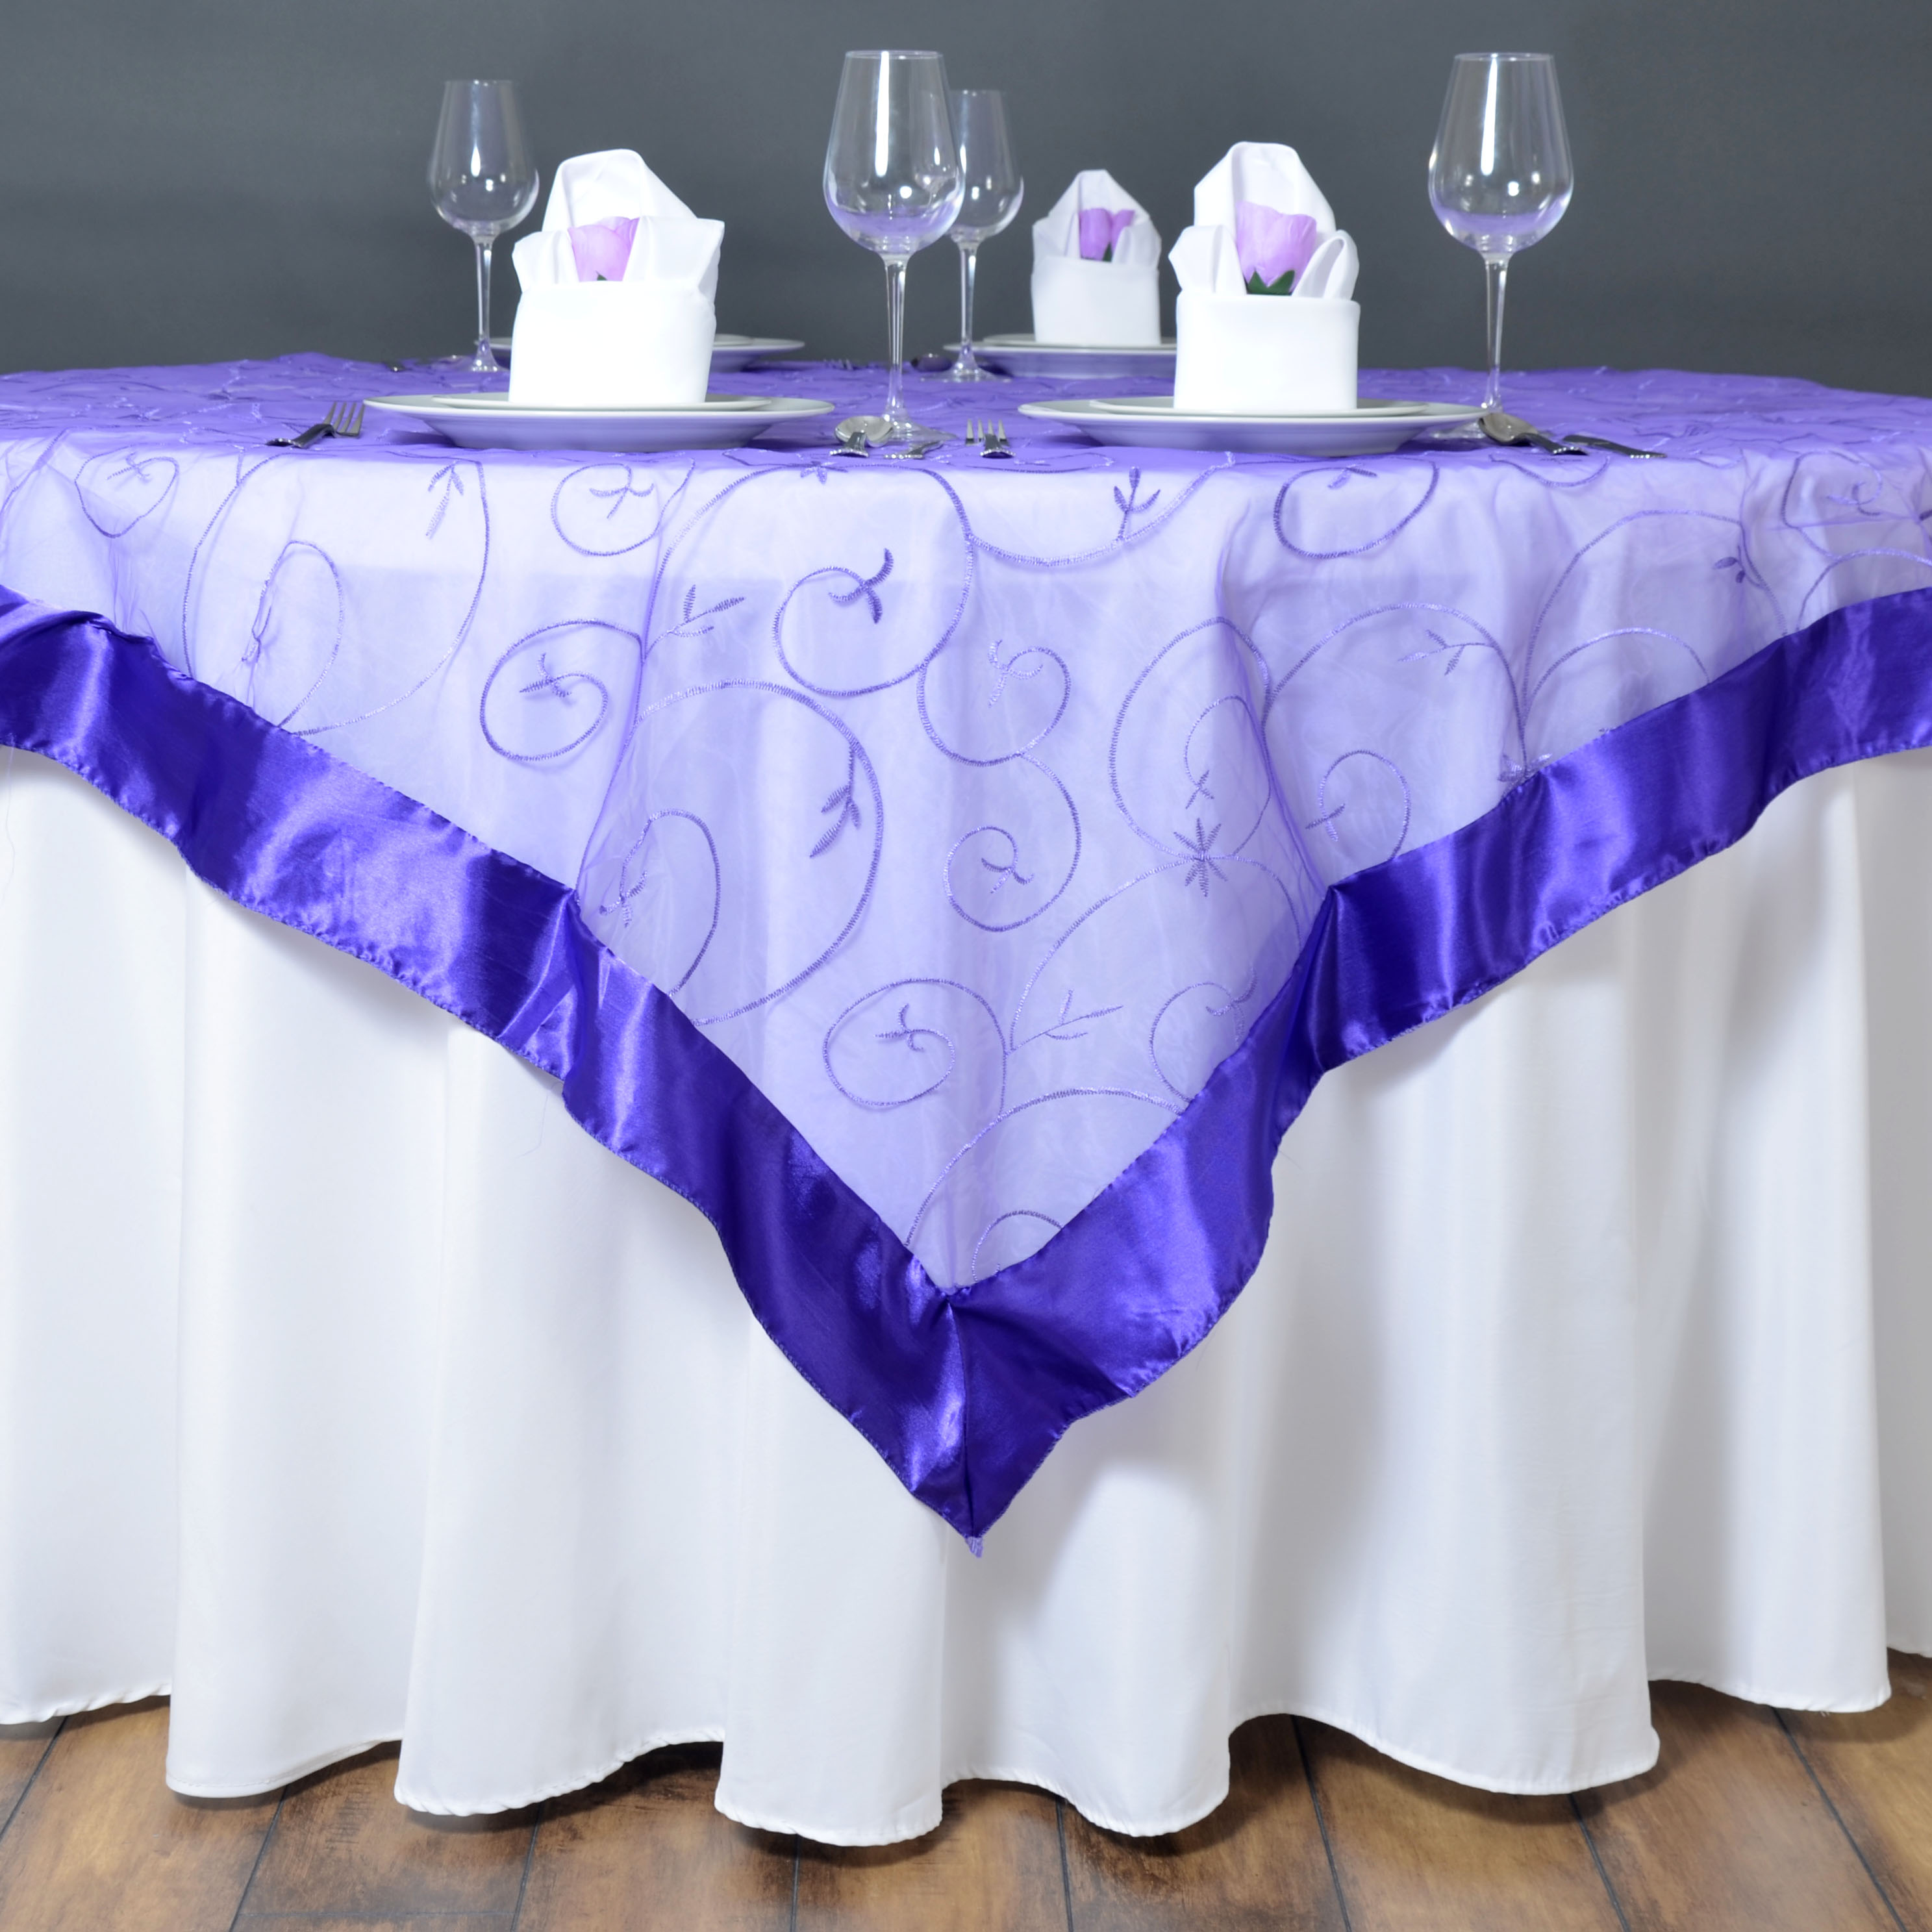 72x72 034 Embroidered Sheer Organza Table Overlay Unique